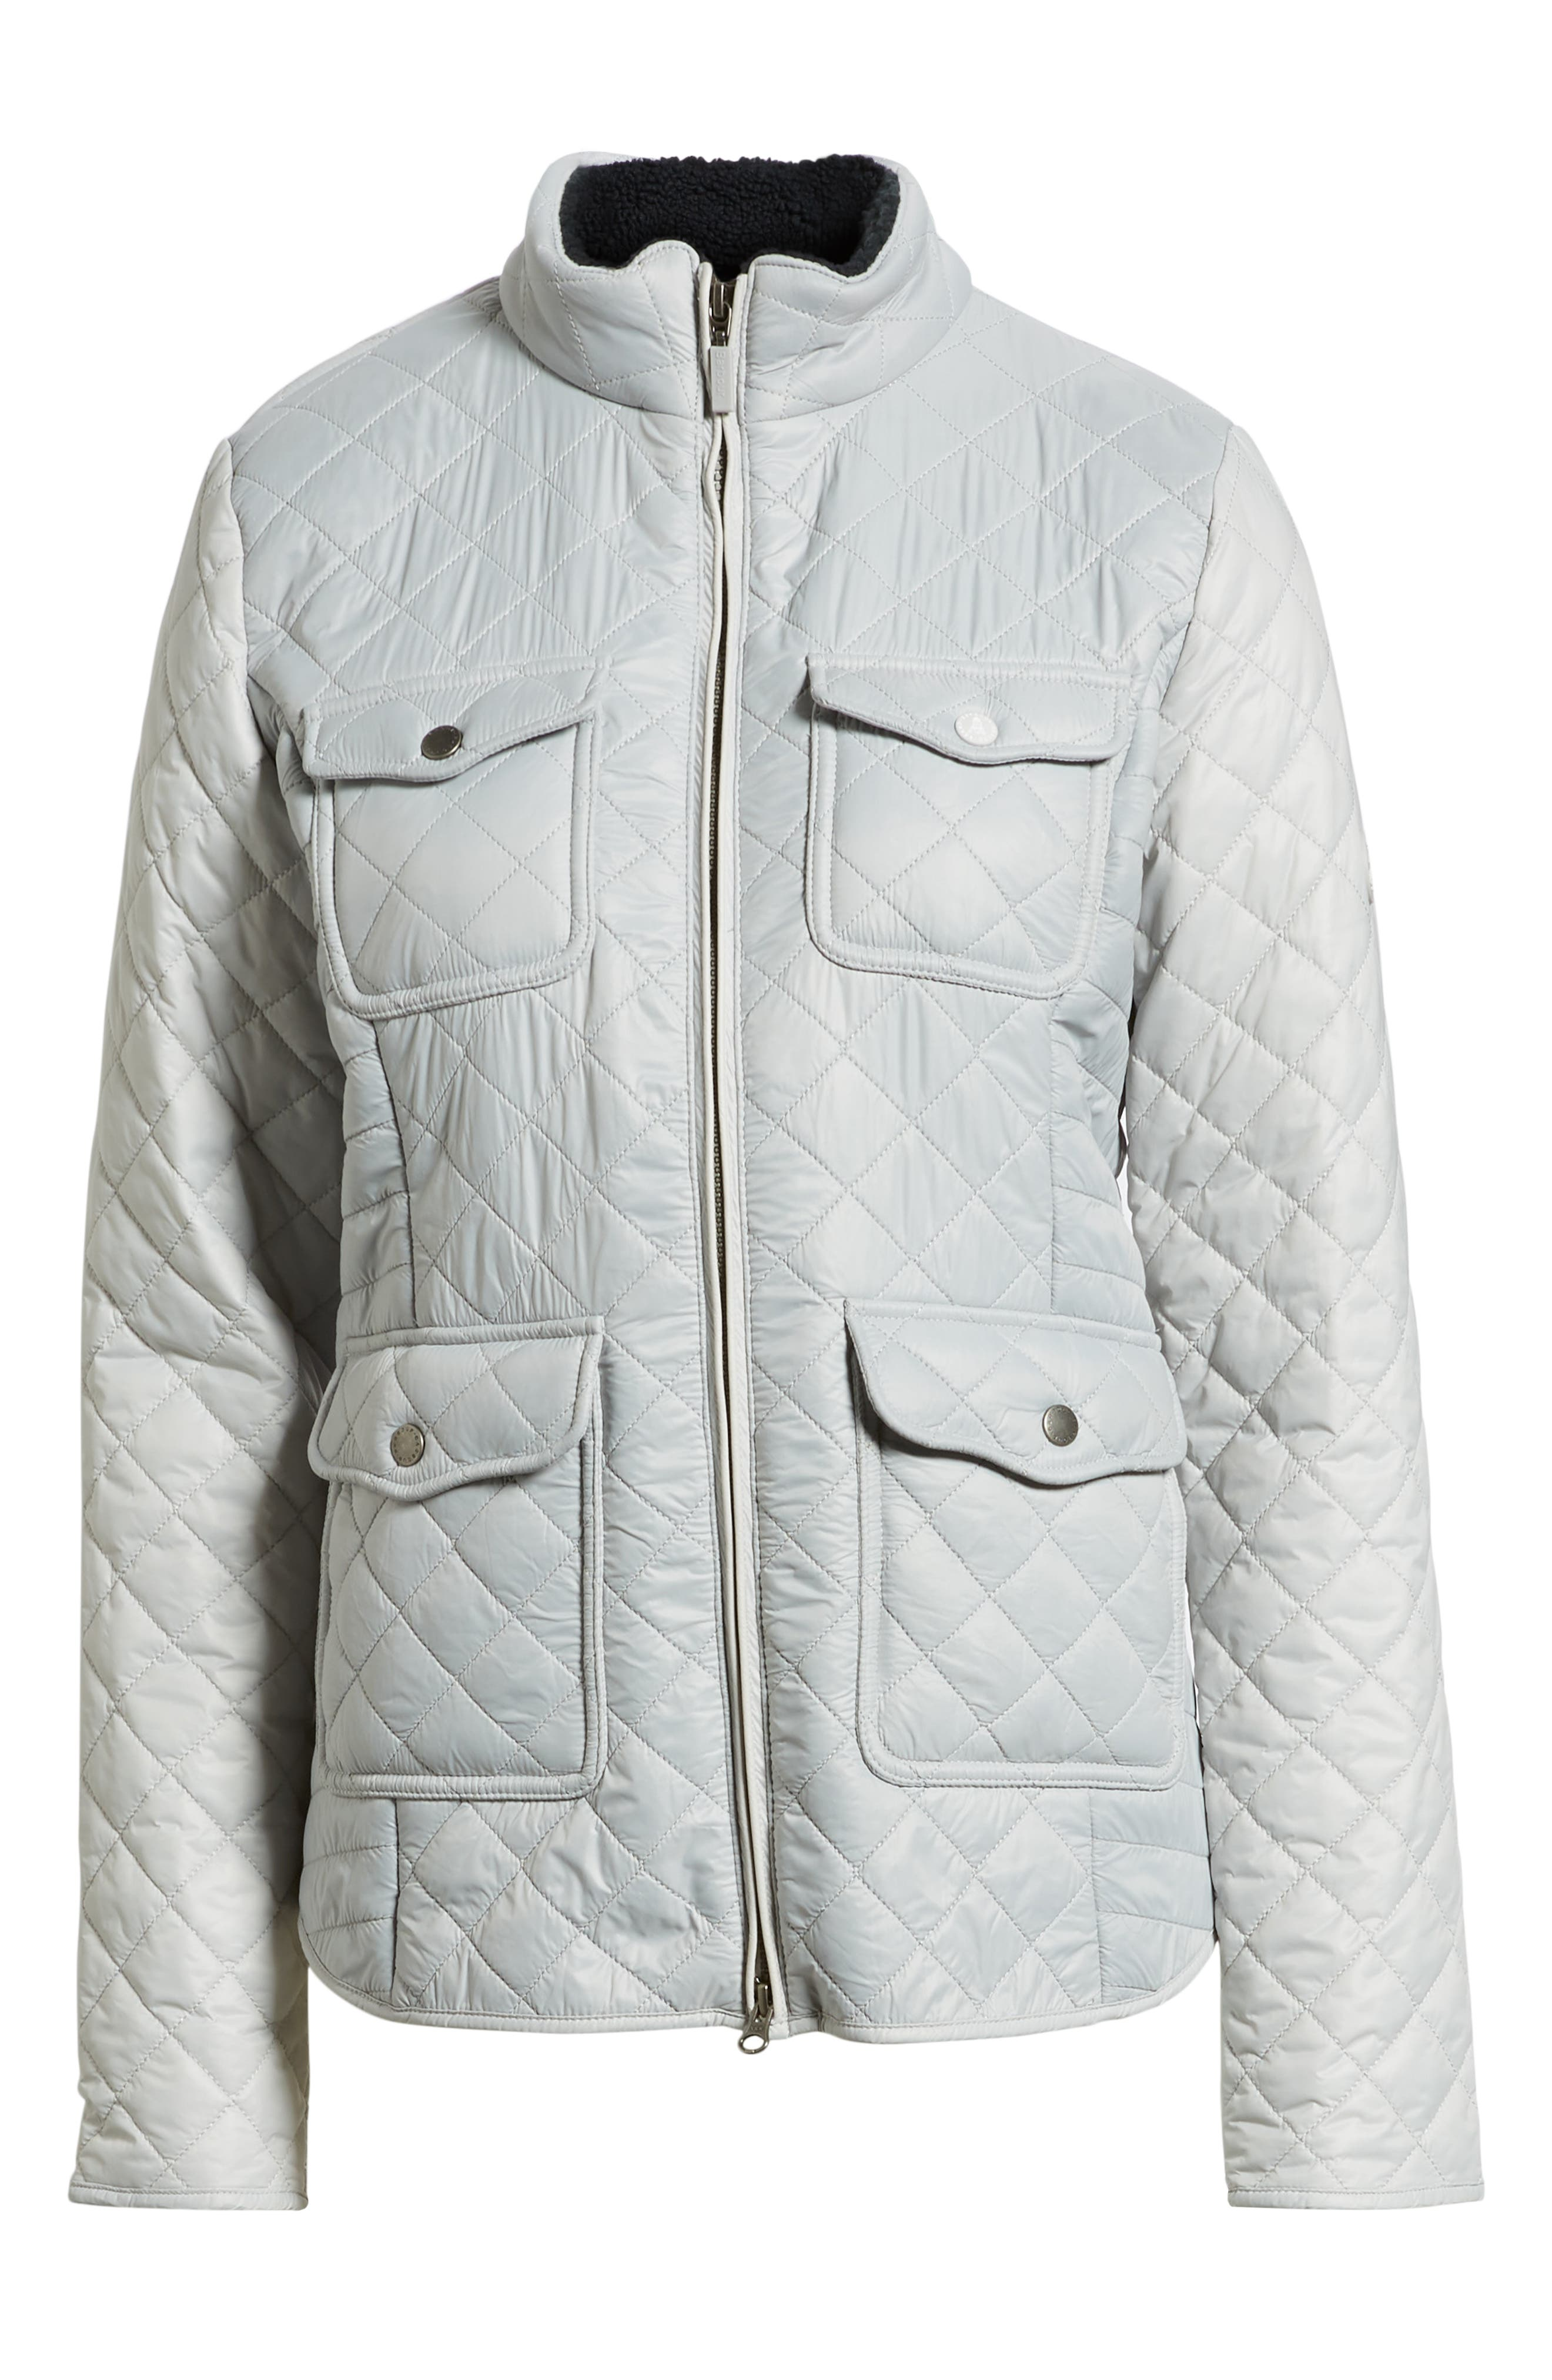 BARBOUR,                             Weymouth Quilted Jacket,                             Alternate thumbnail 6, color,                             100